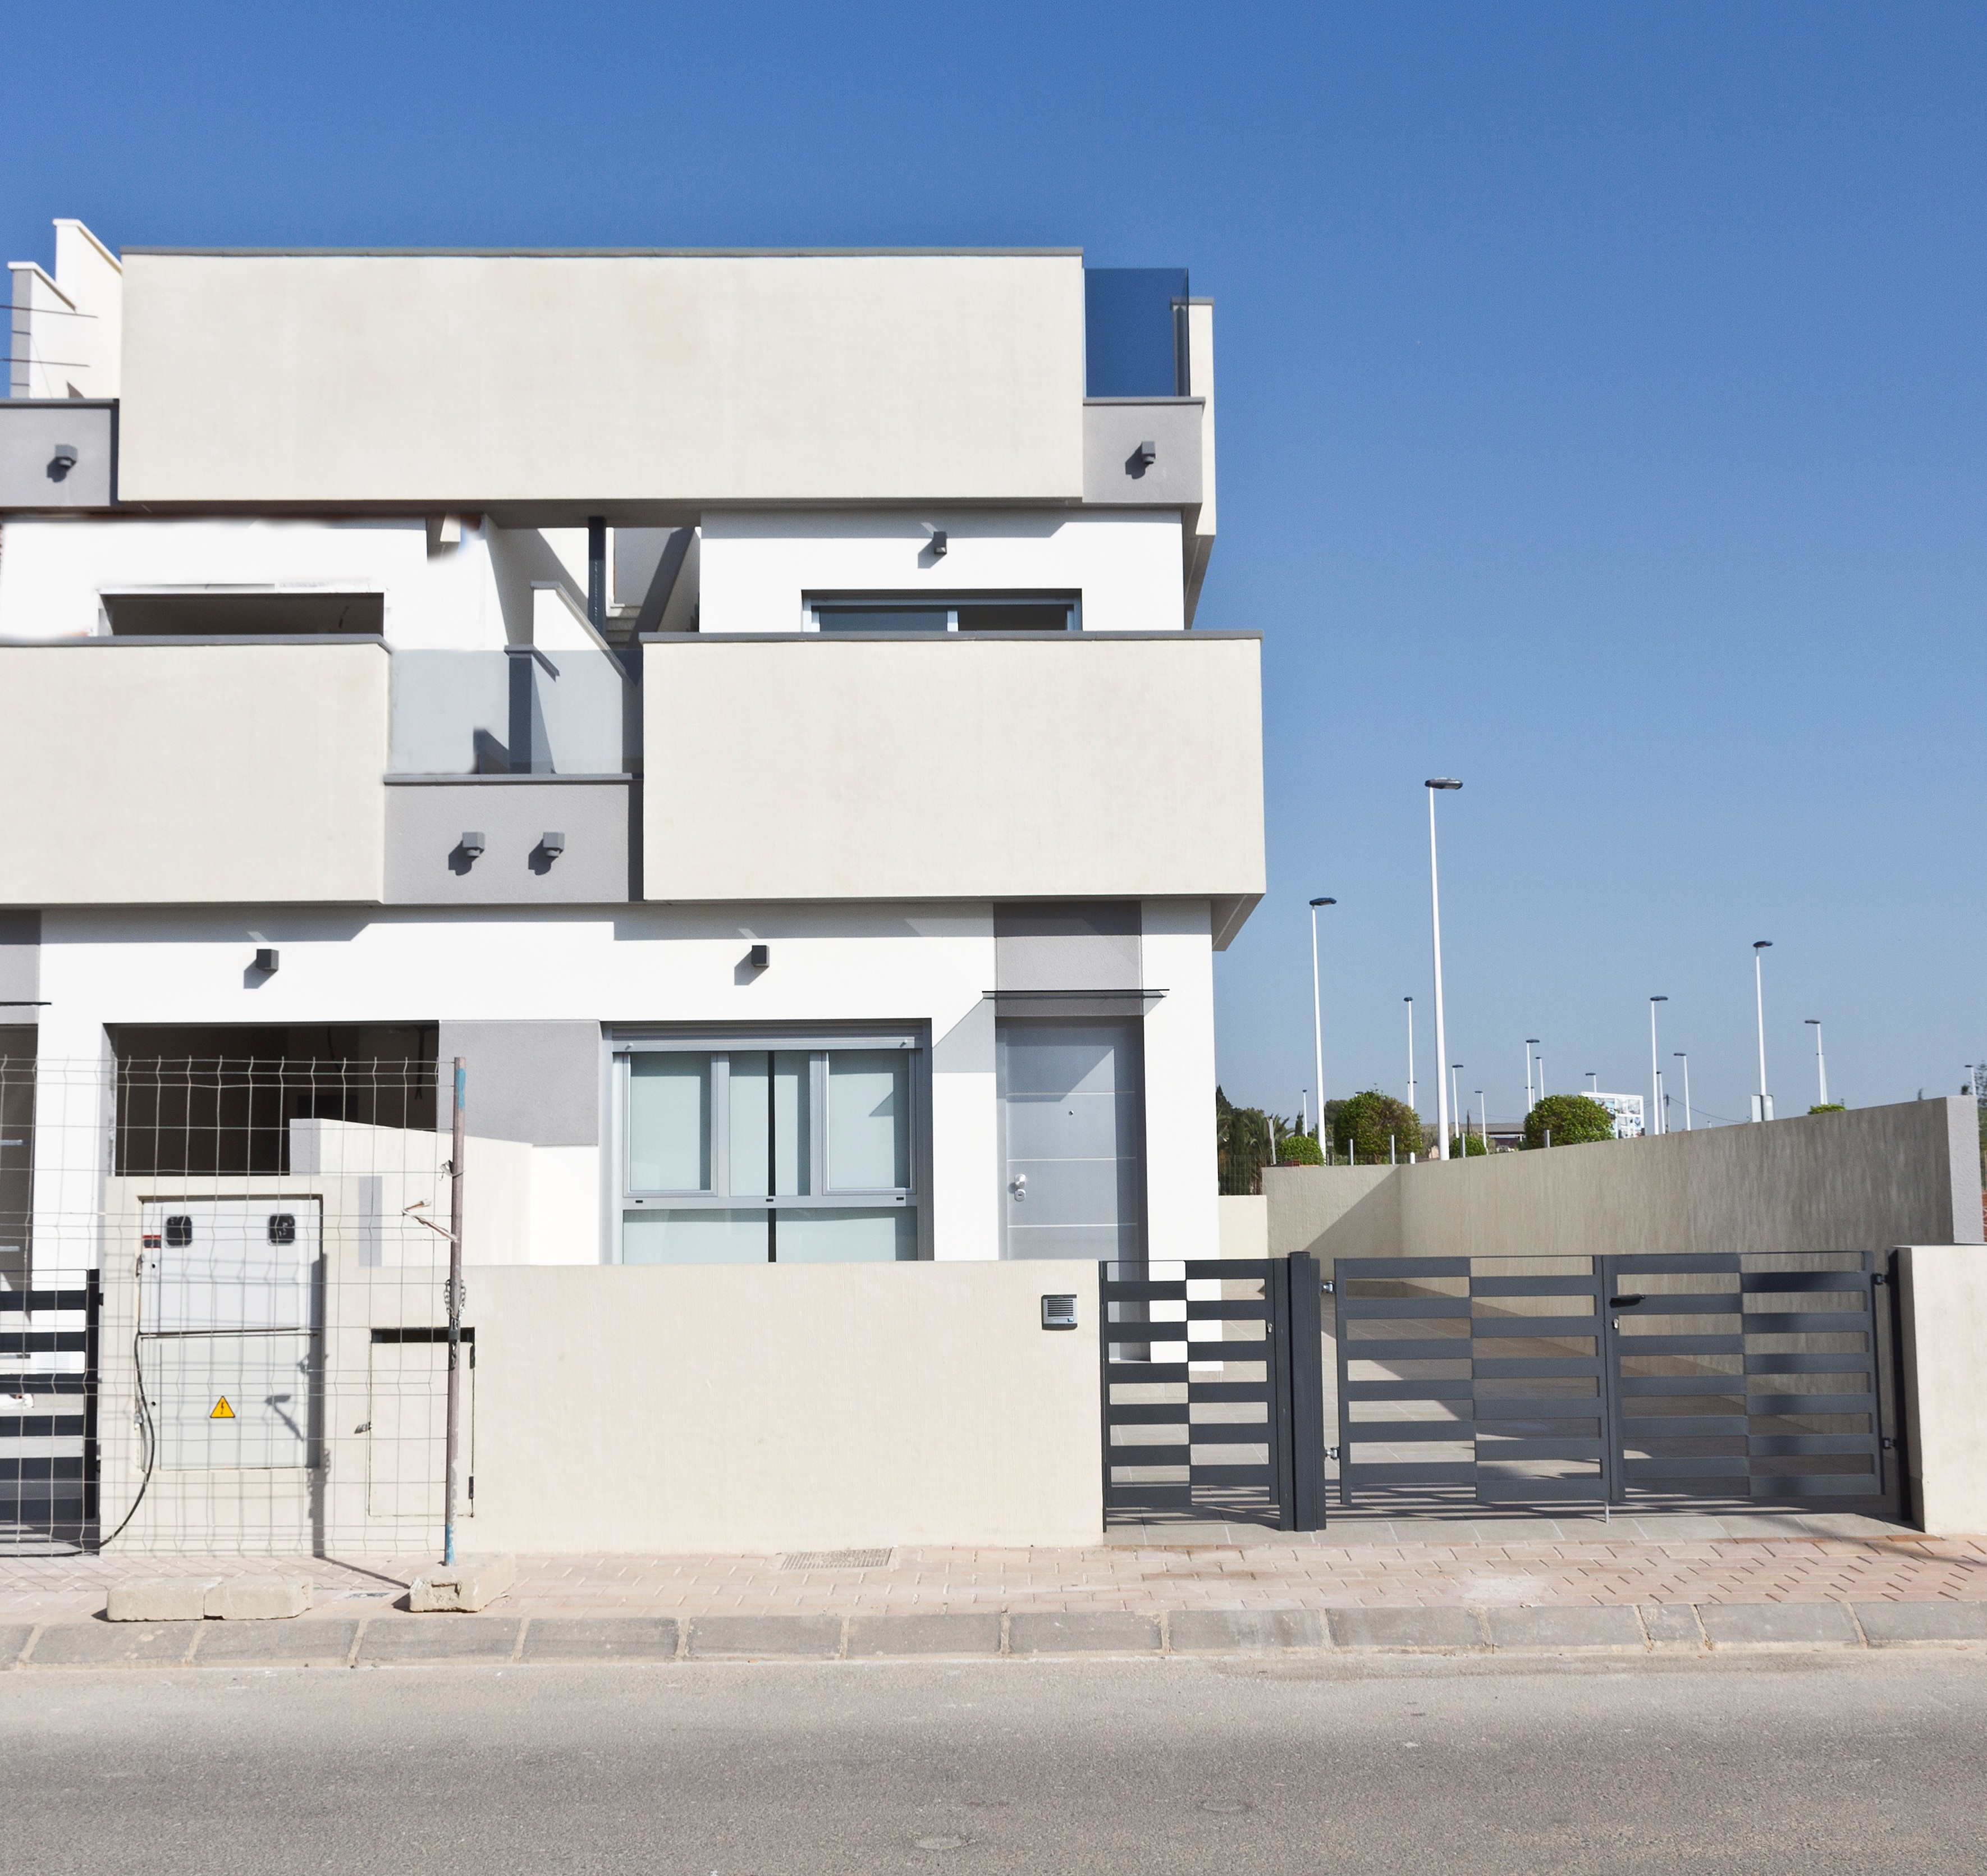 3 bedroom House for sale in San Pedro del Pinatar